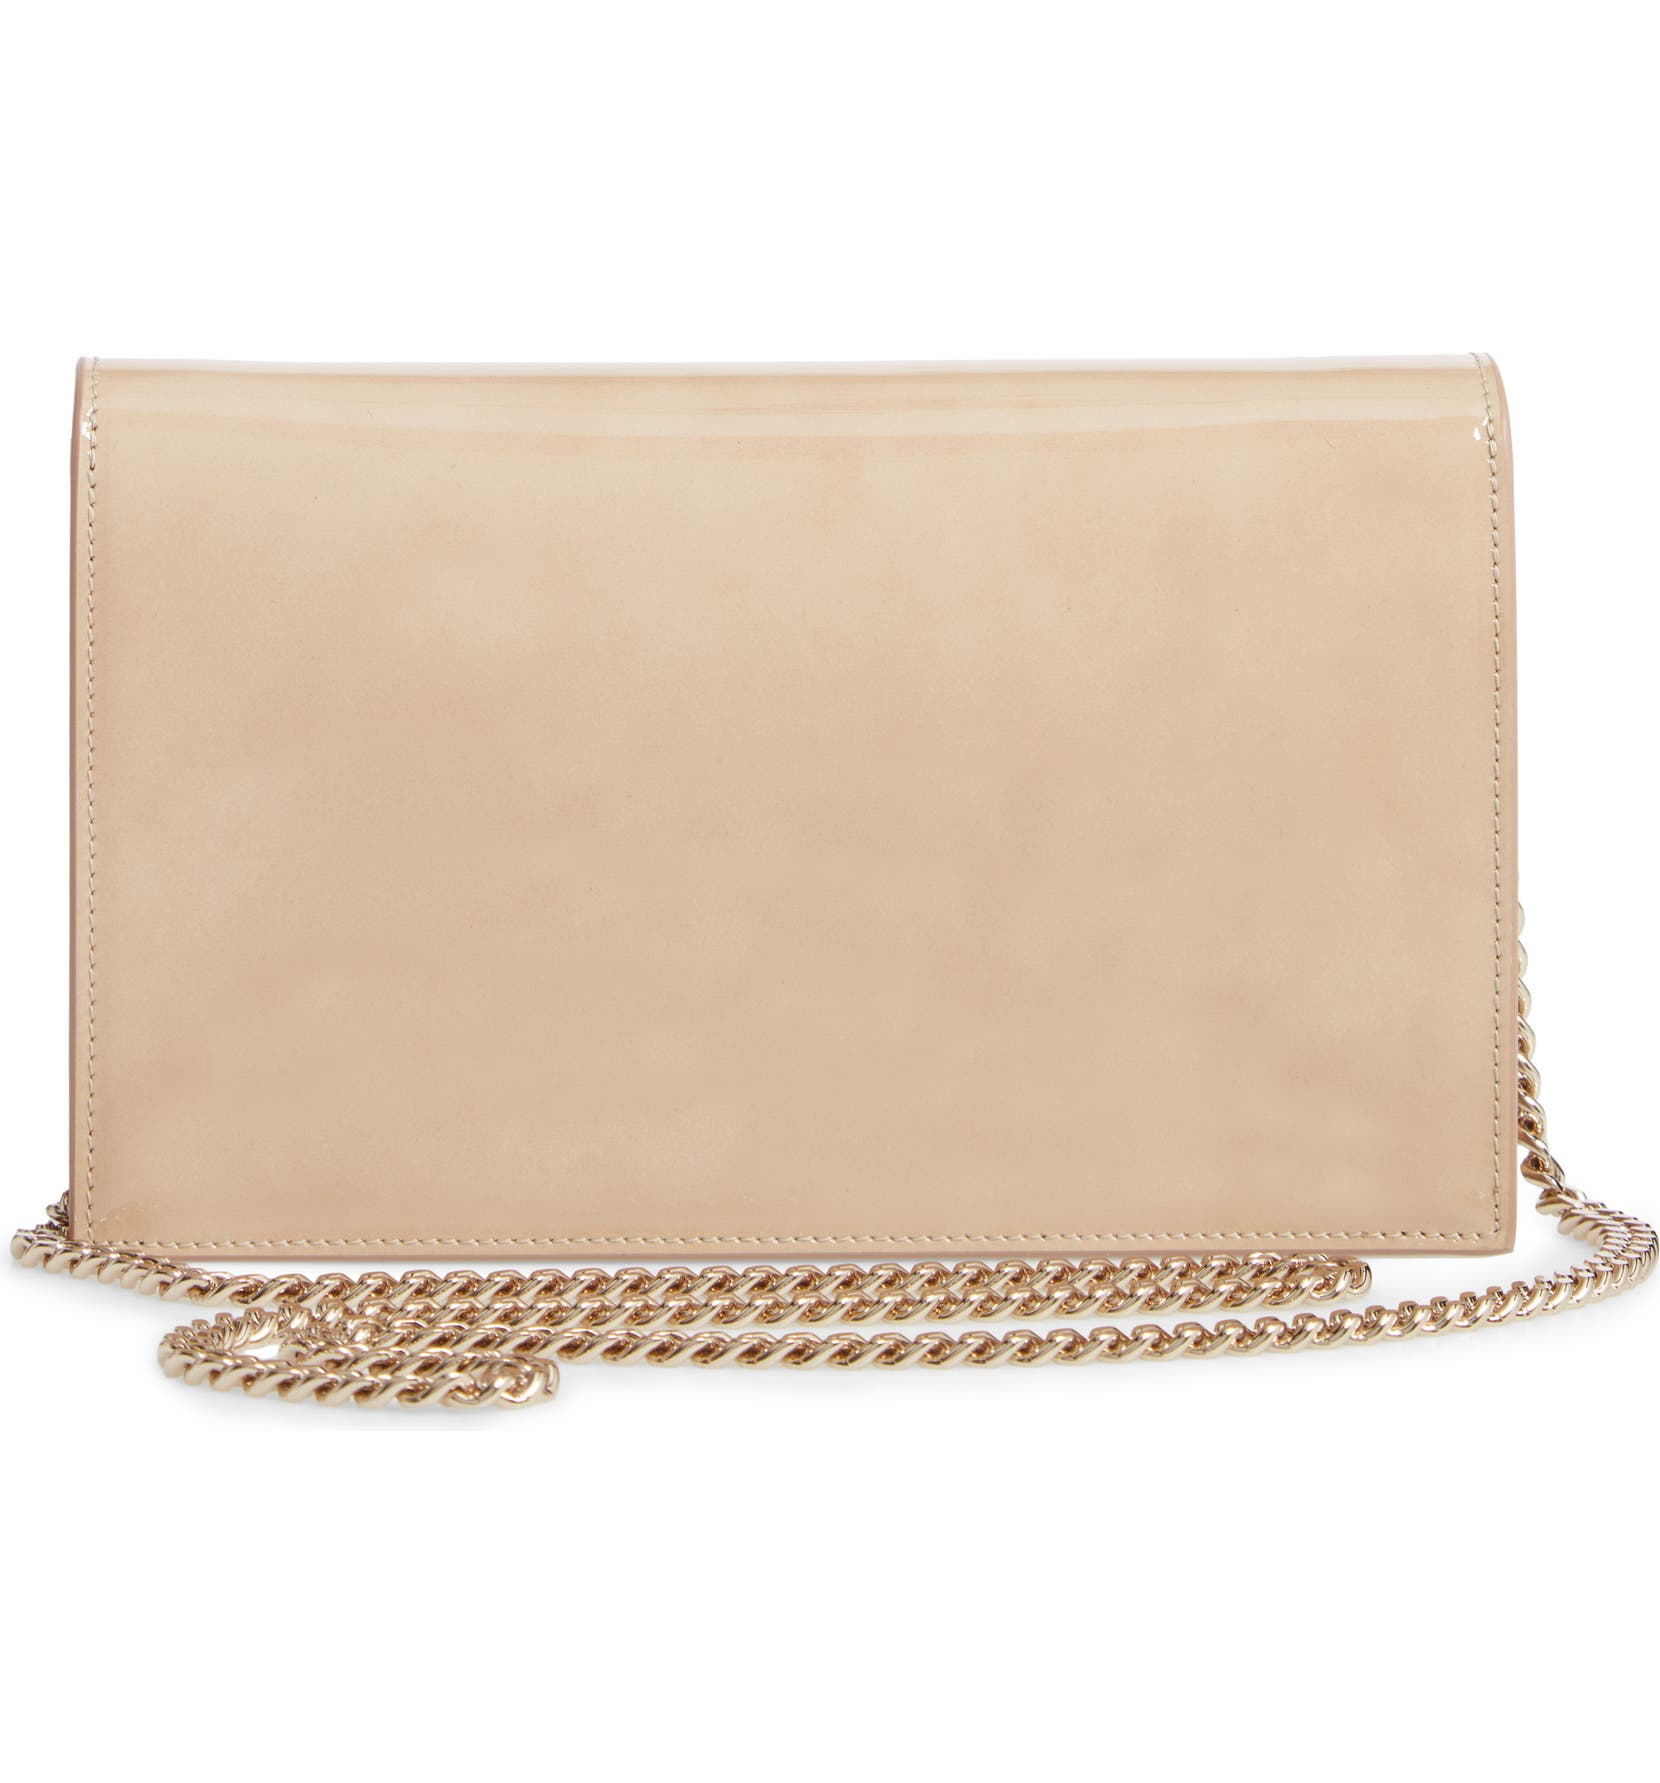 062fe9b788f Jimmy Choo Lizzie Patent Leather & Suede Clutch | Nordstrom